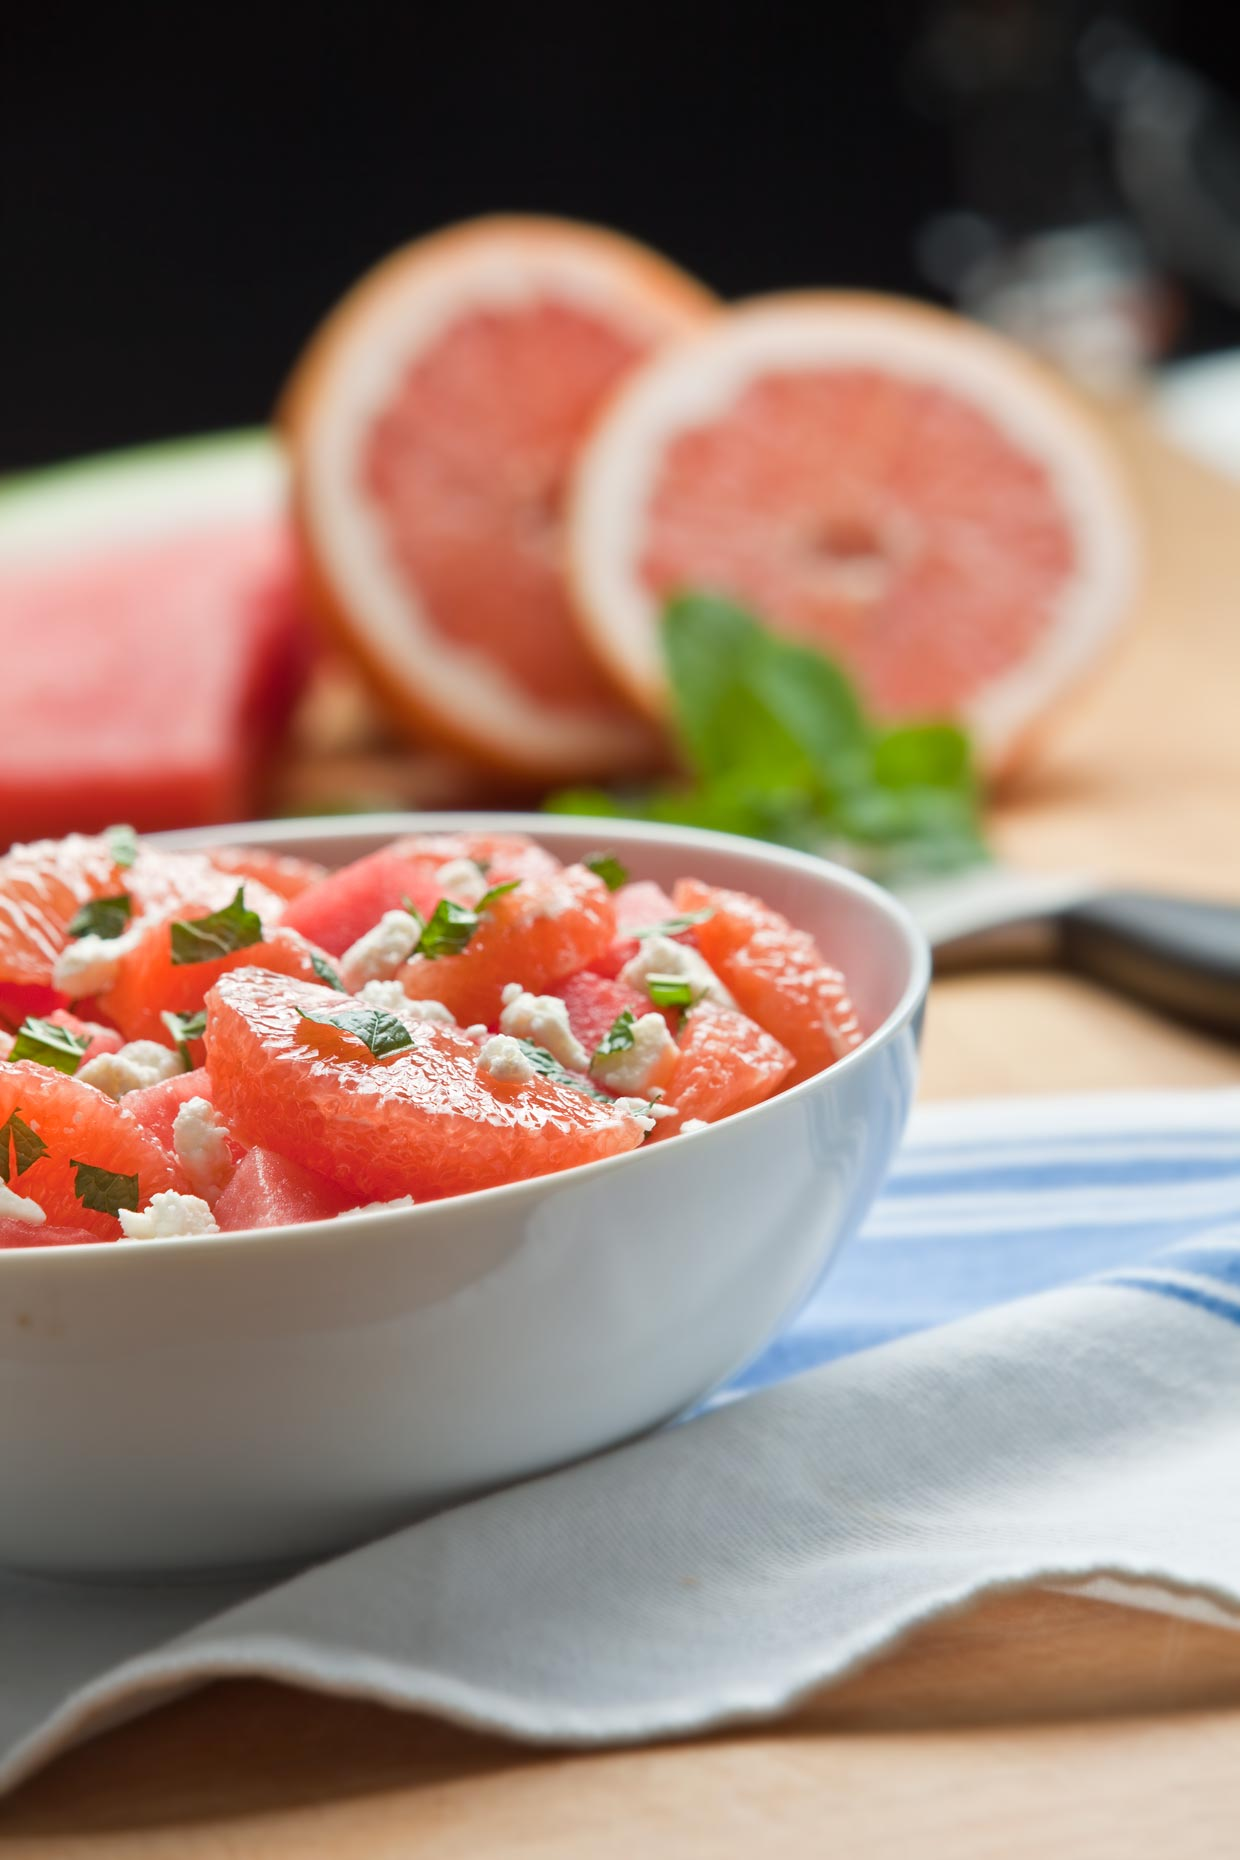 Food Photography | Grapefruit Salad